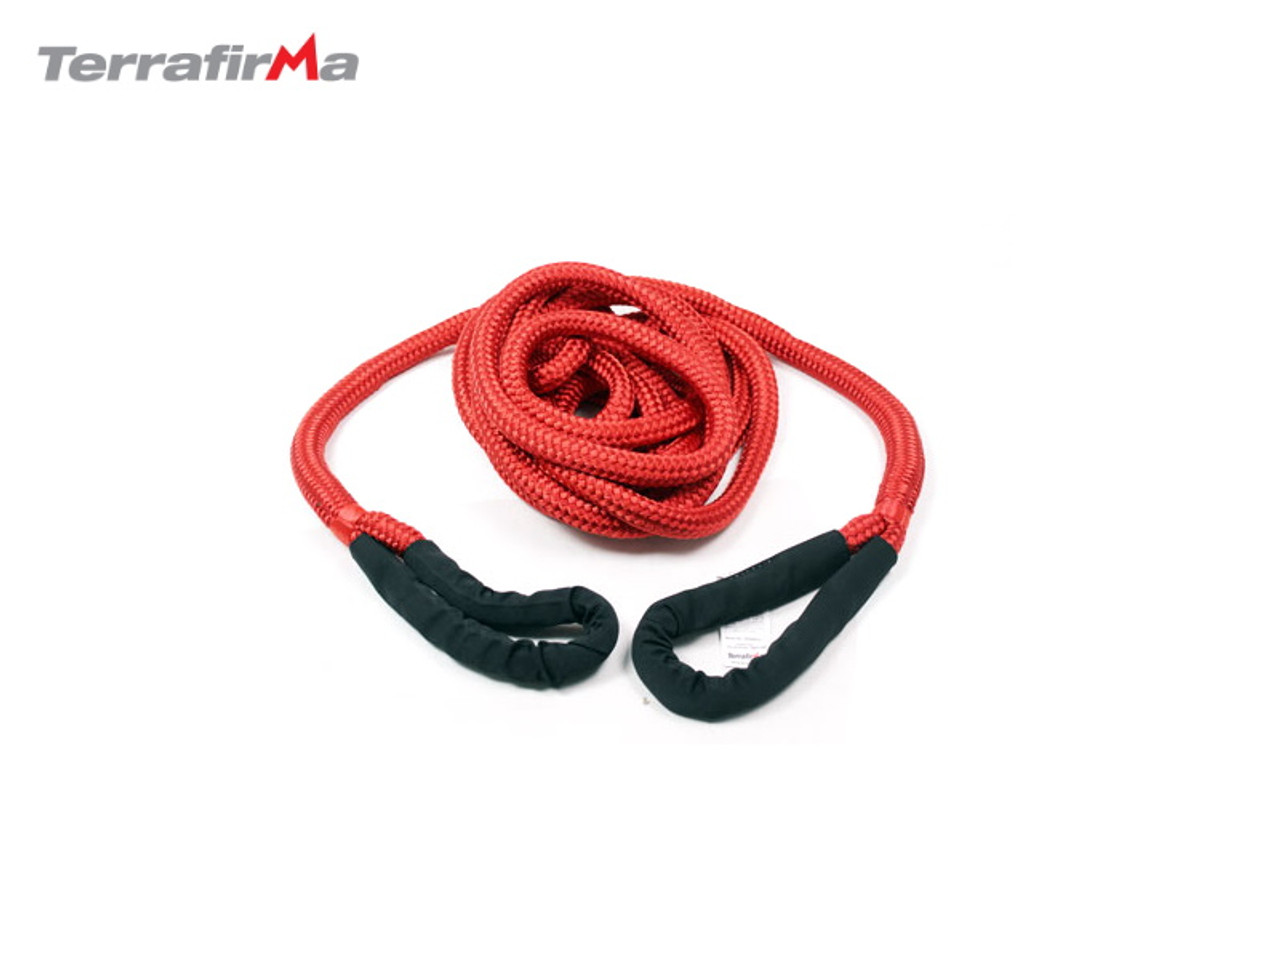 Terrafrima Recovery Rope 22mm 30ft 13000kgs